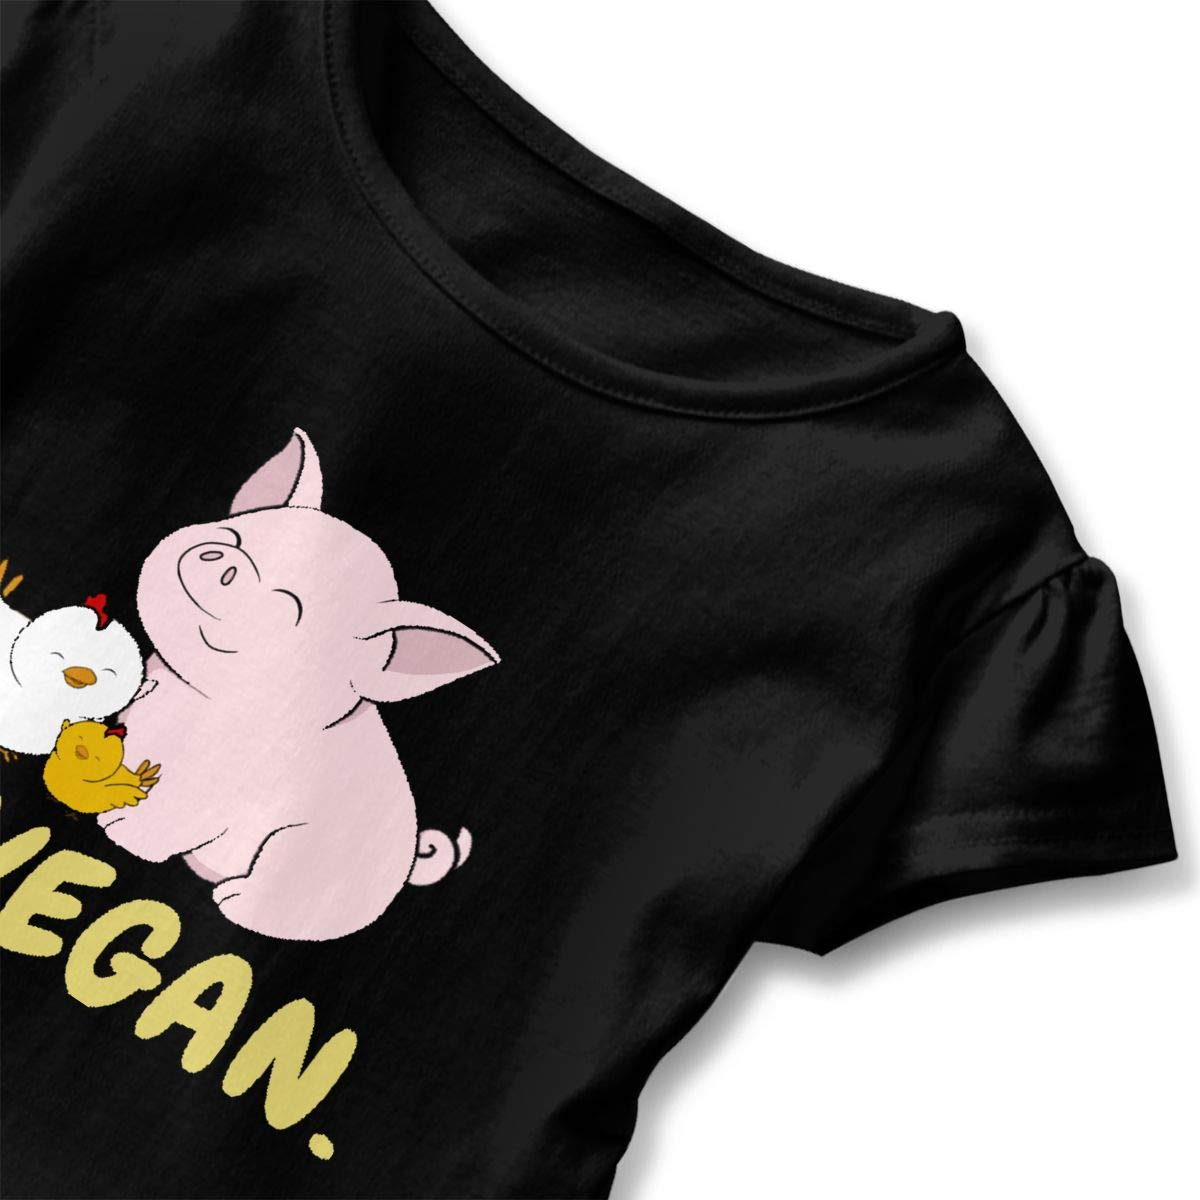 Go Vegan Cute Pig and Chicken T-Shirt Toddler Girls Flounced T Shirts Soft Graphic T-Shirt for 2-6T Baby Girls